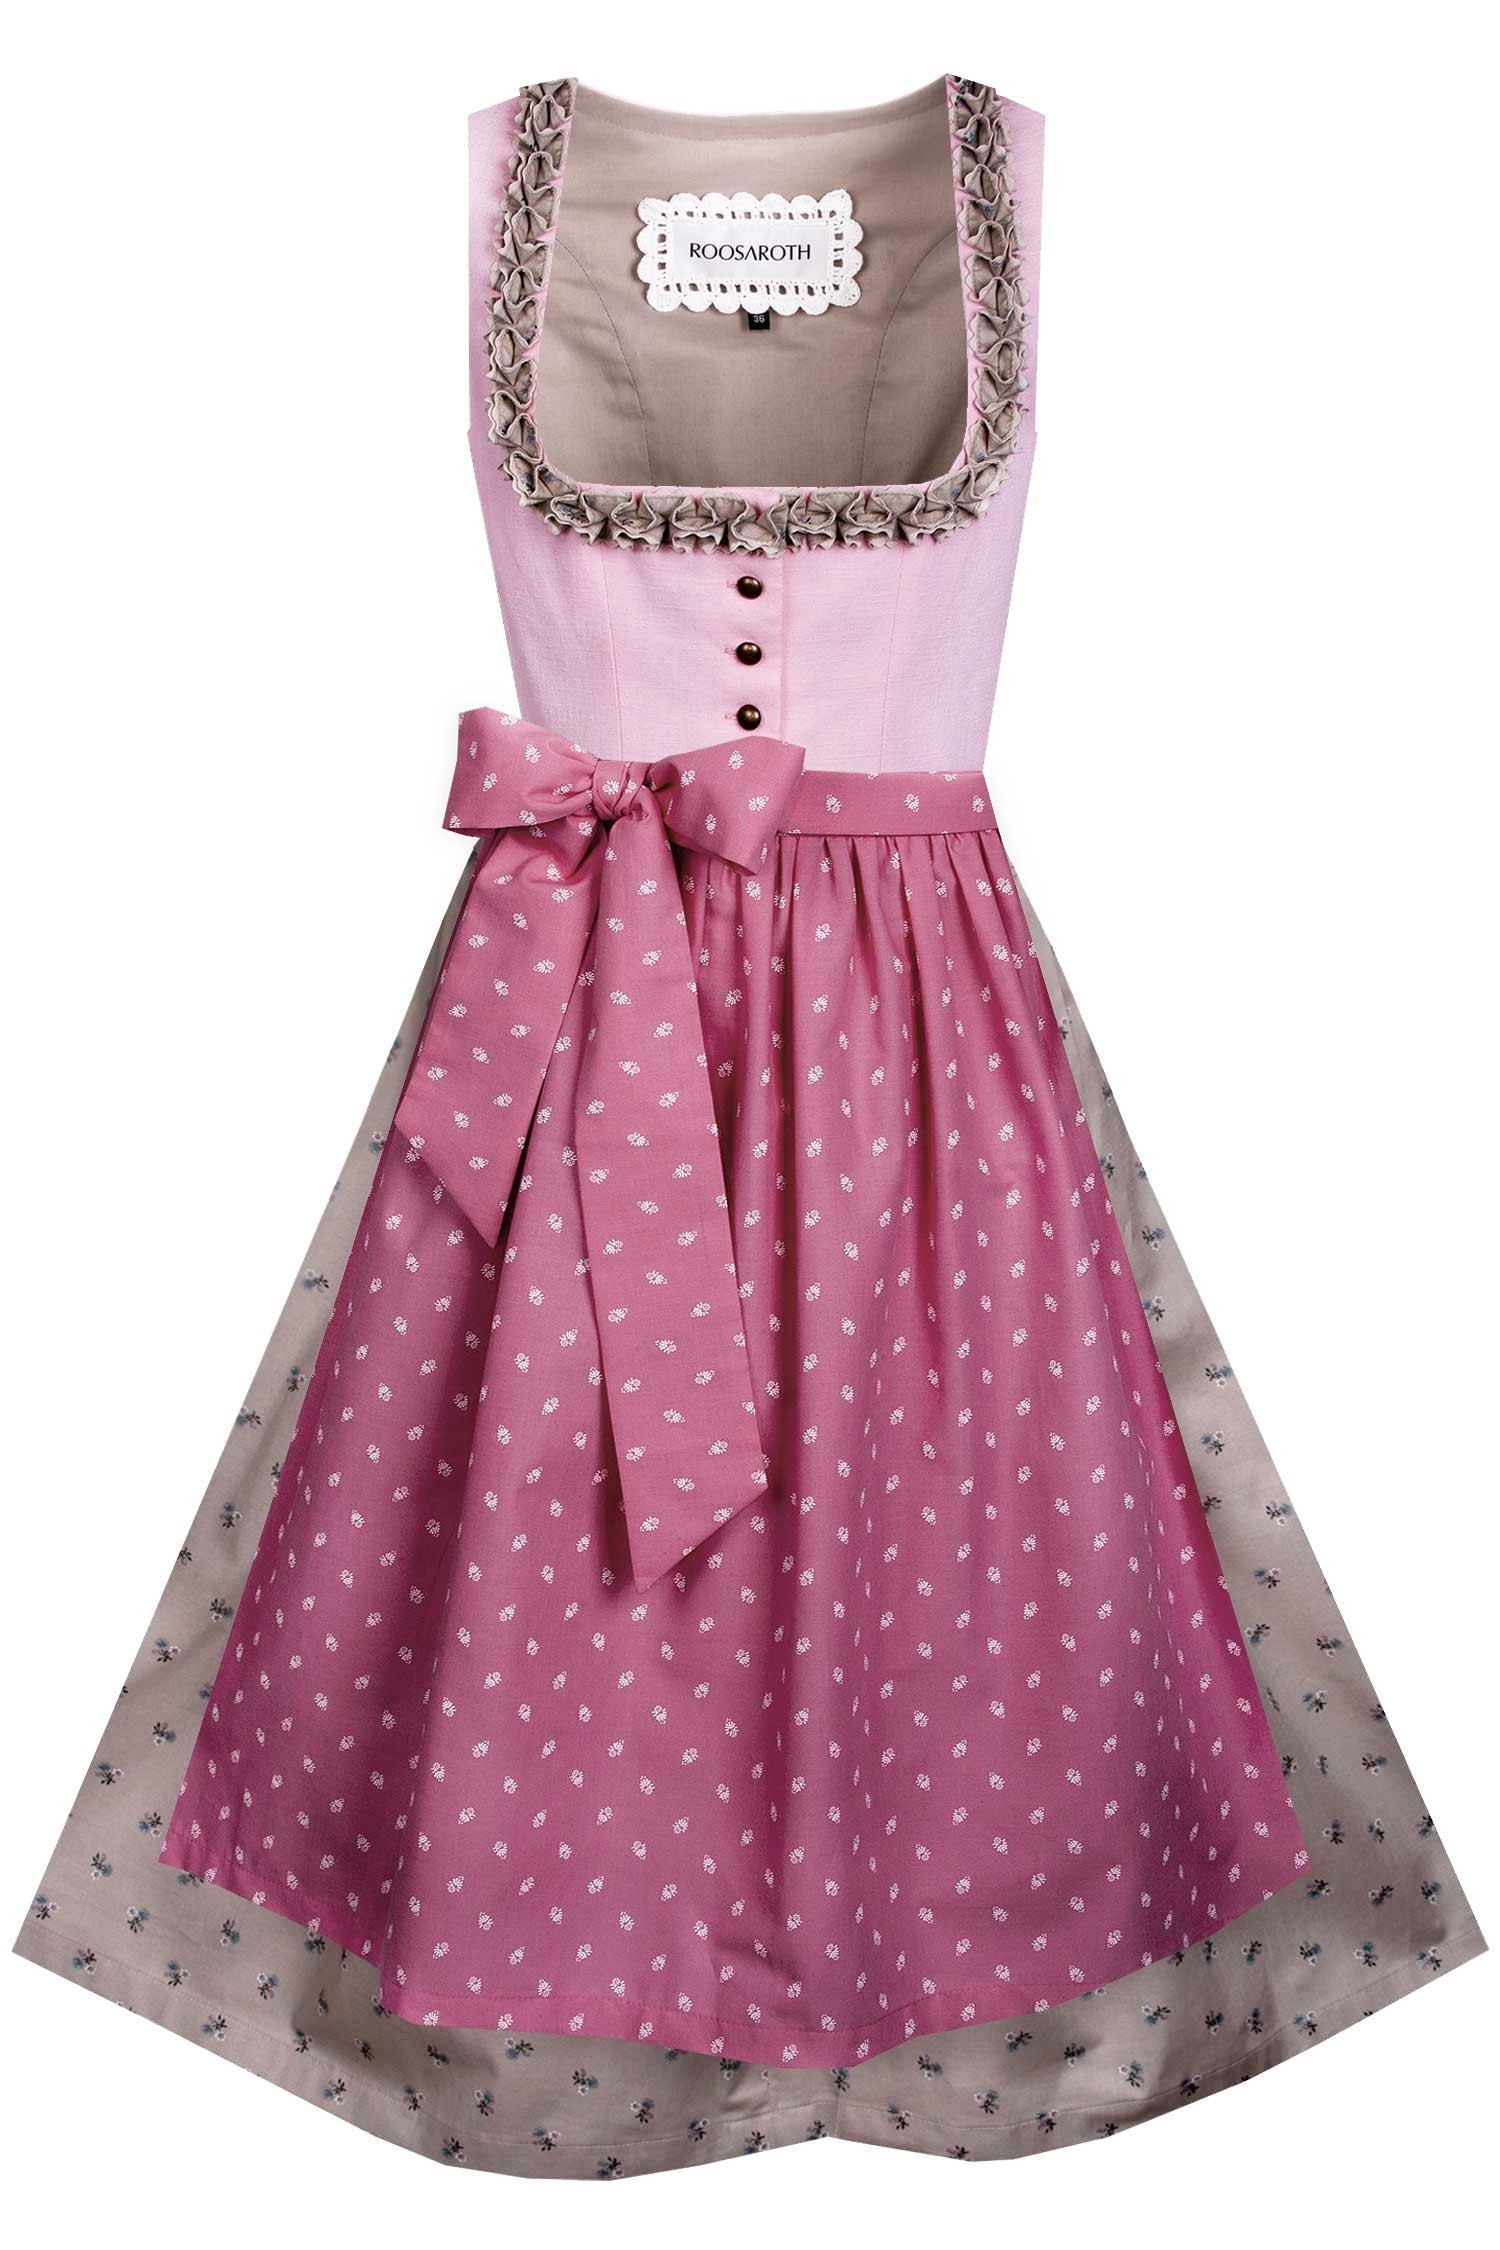 DIRNDL ALMA ROSE SHADOW